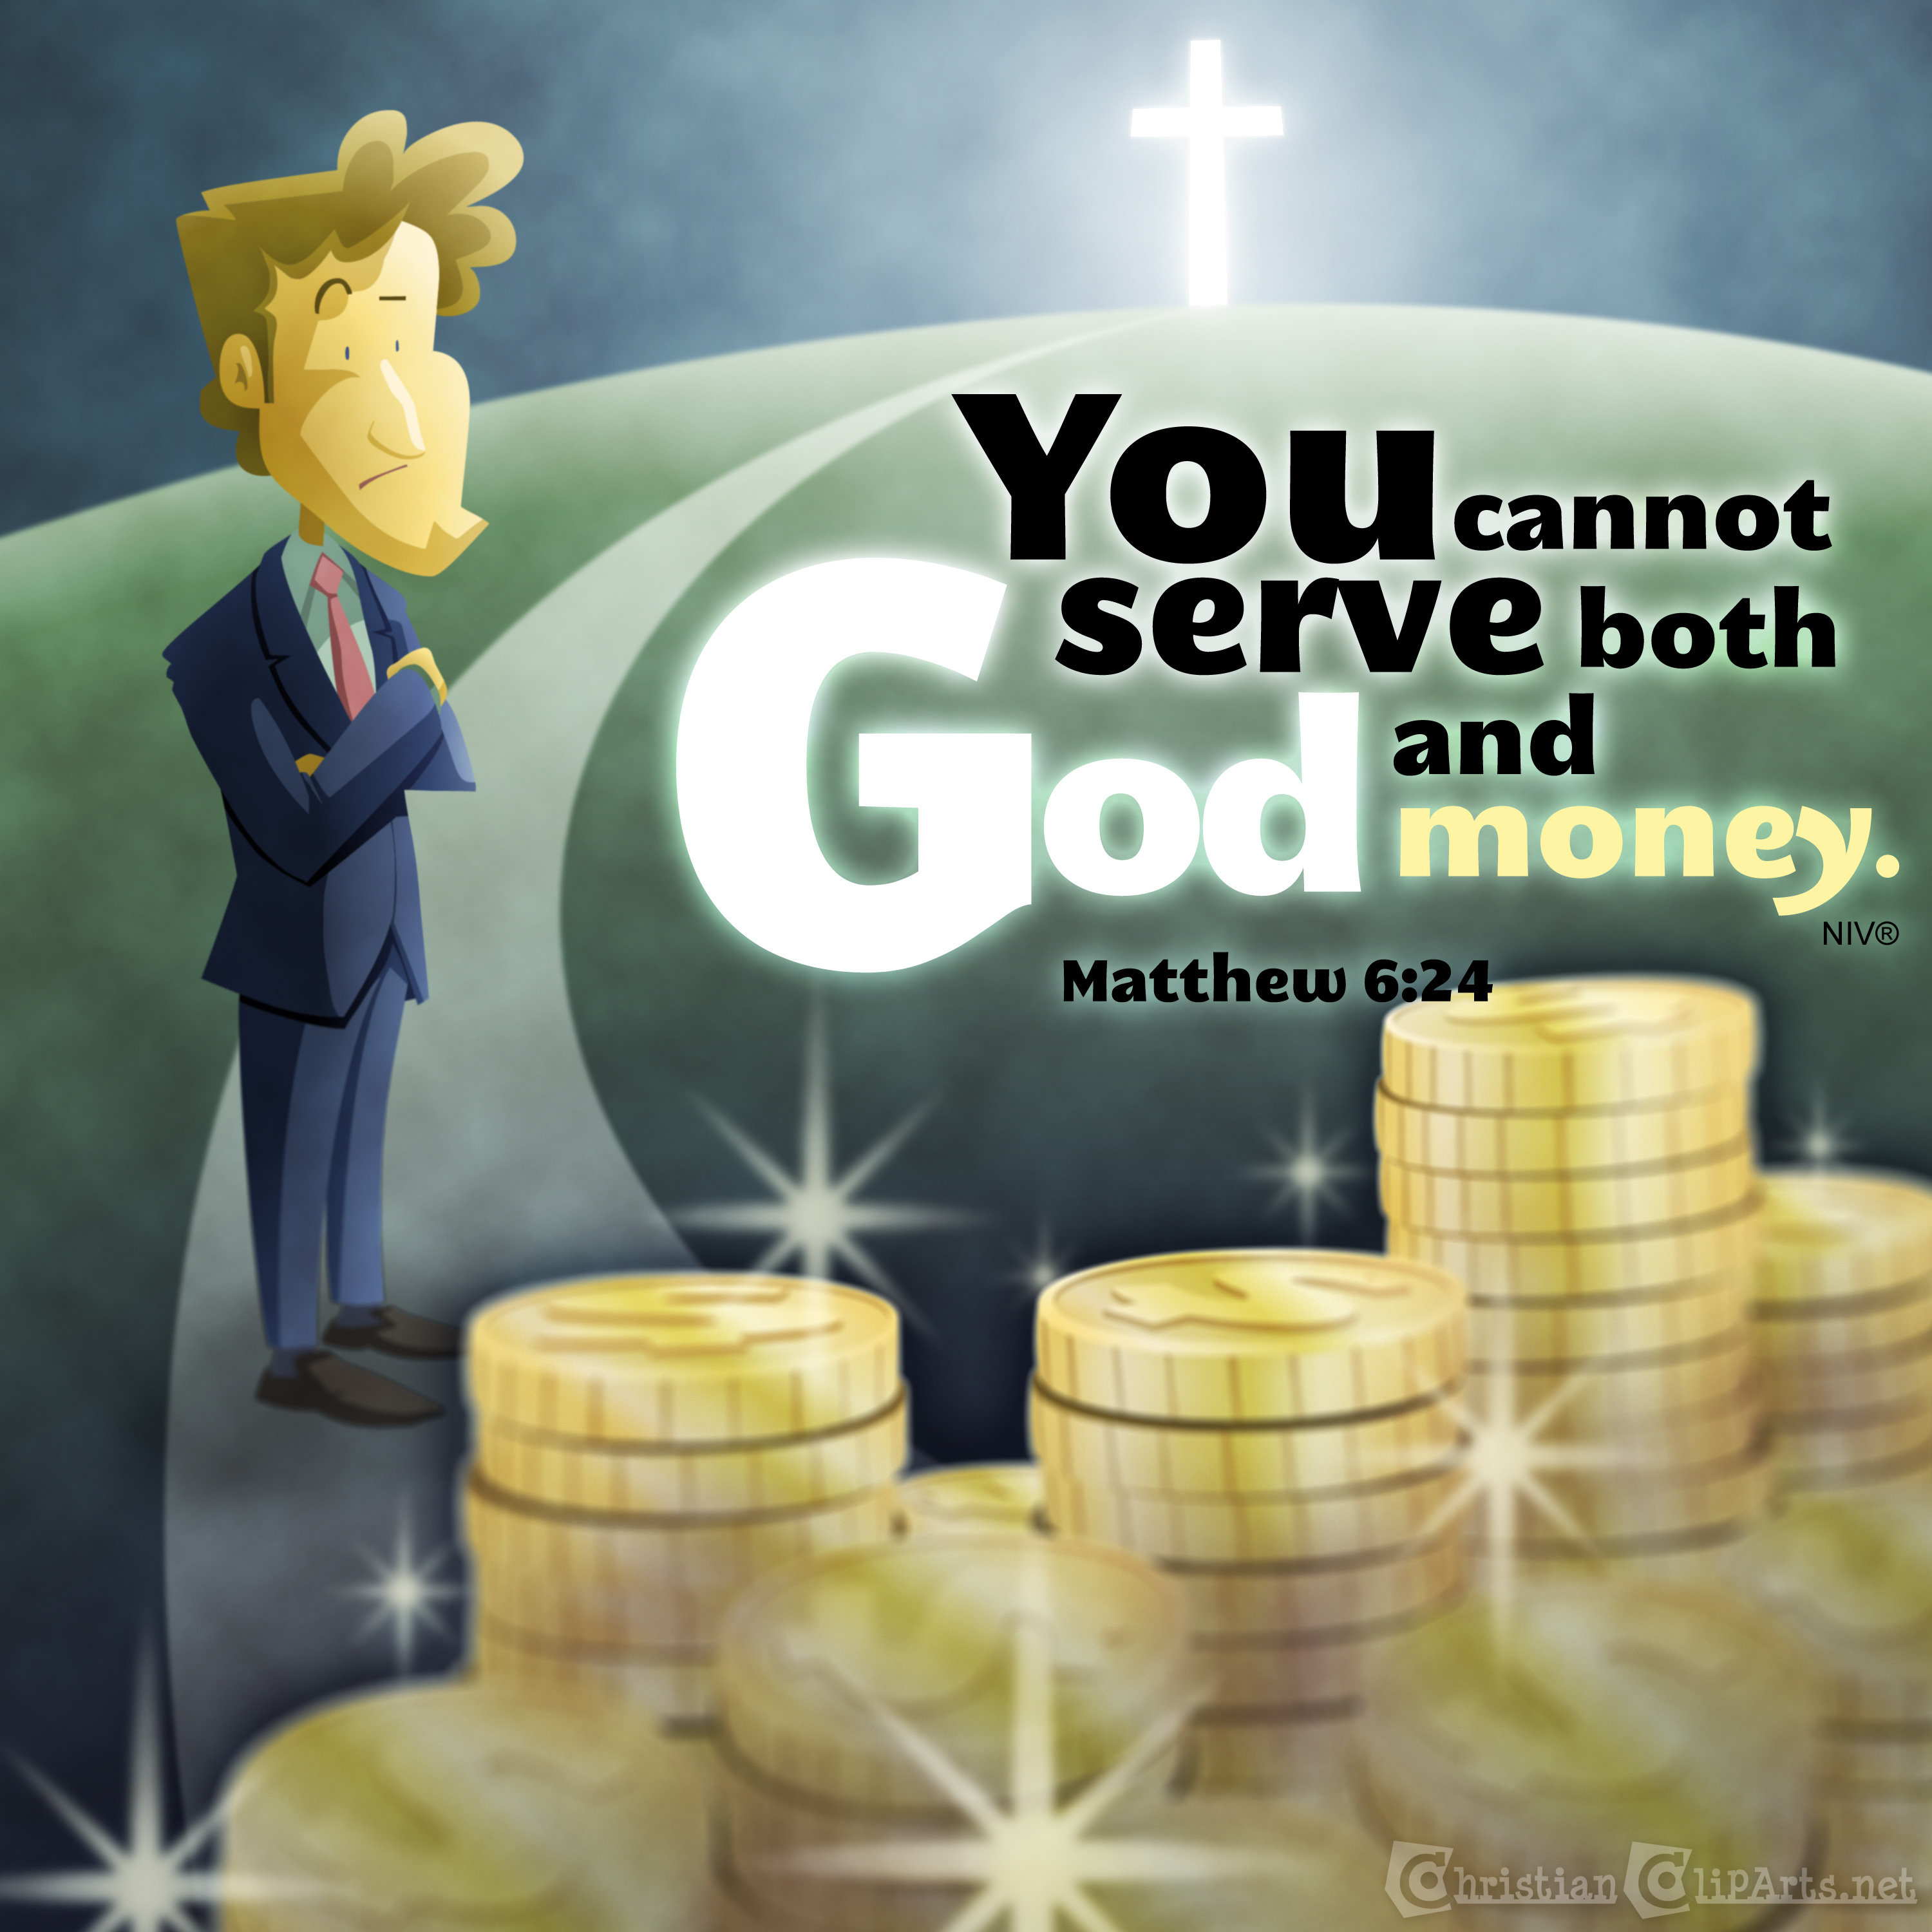 Cannot serve both God and money